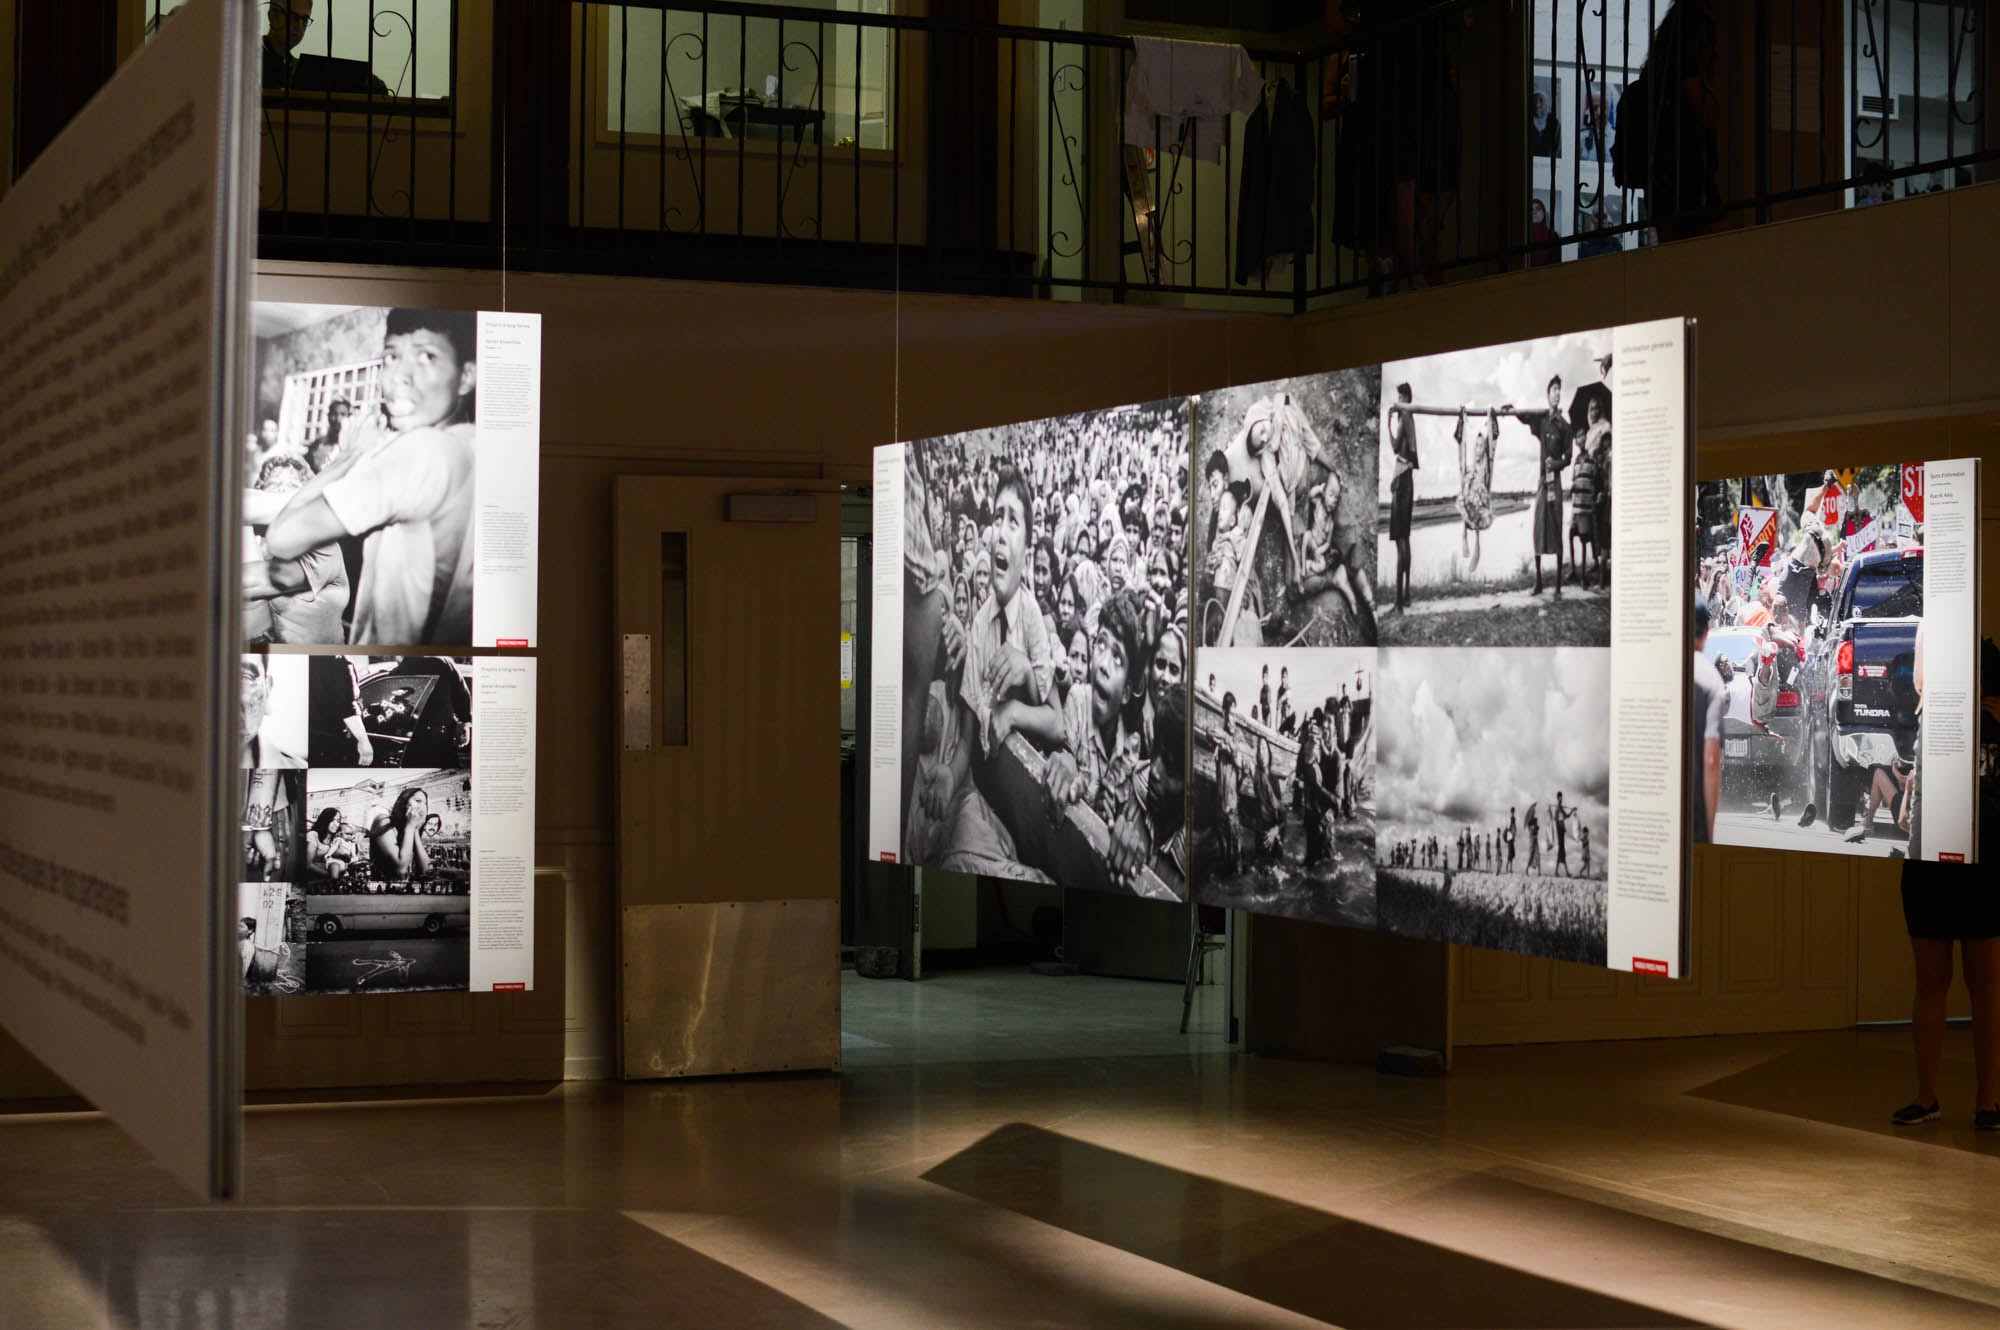 13th annual world press photo exhibition captures emotion and heart